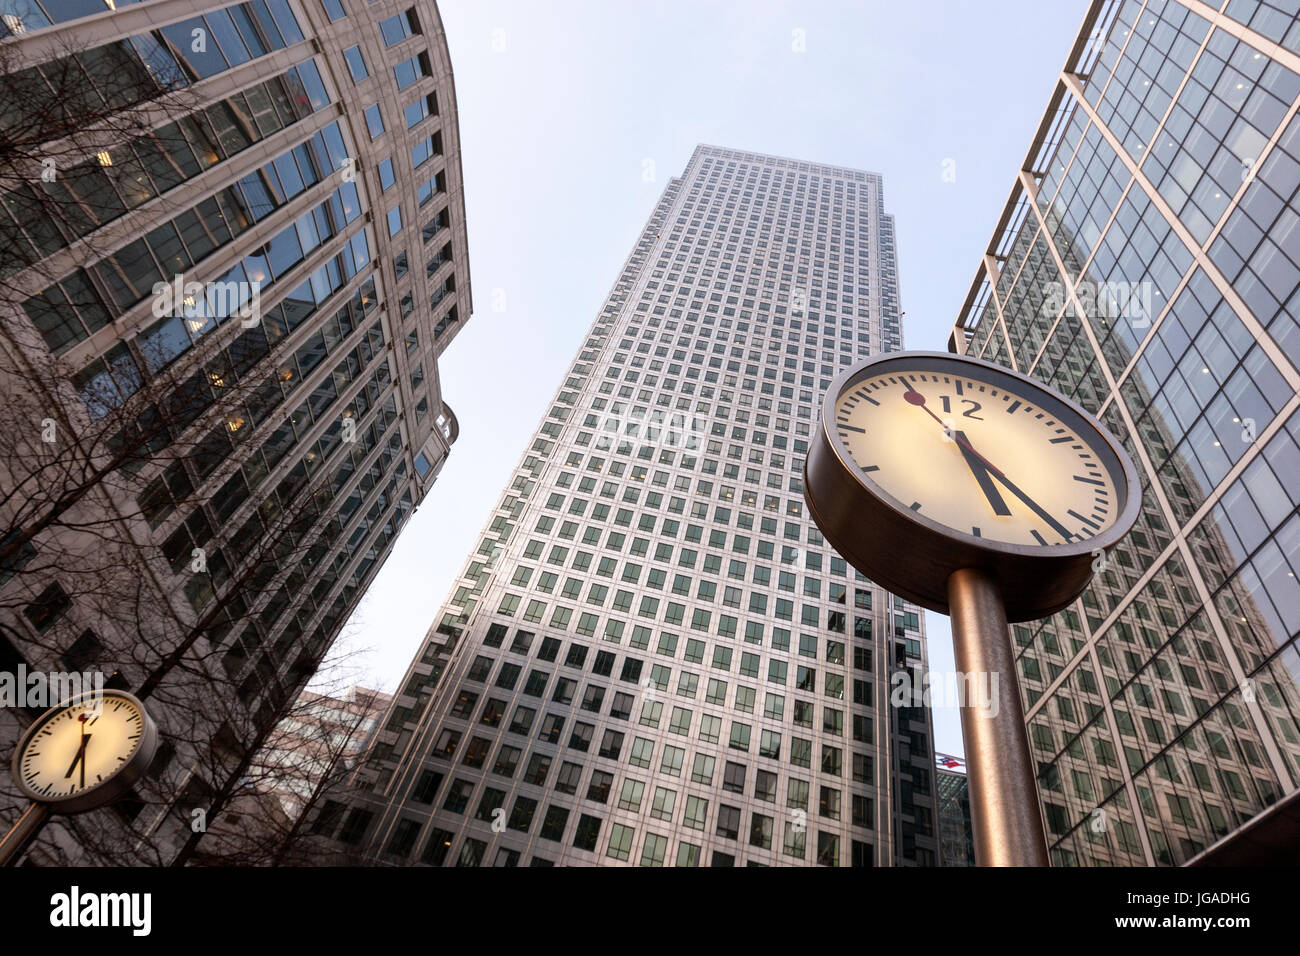 Six Public Clocks, One Canada Square, Canary Wharf,  business district, London, UK - Stock Image